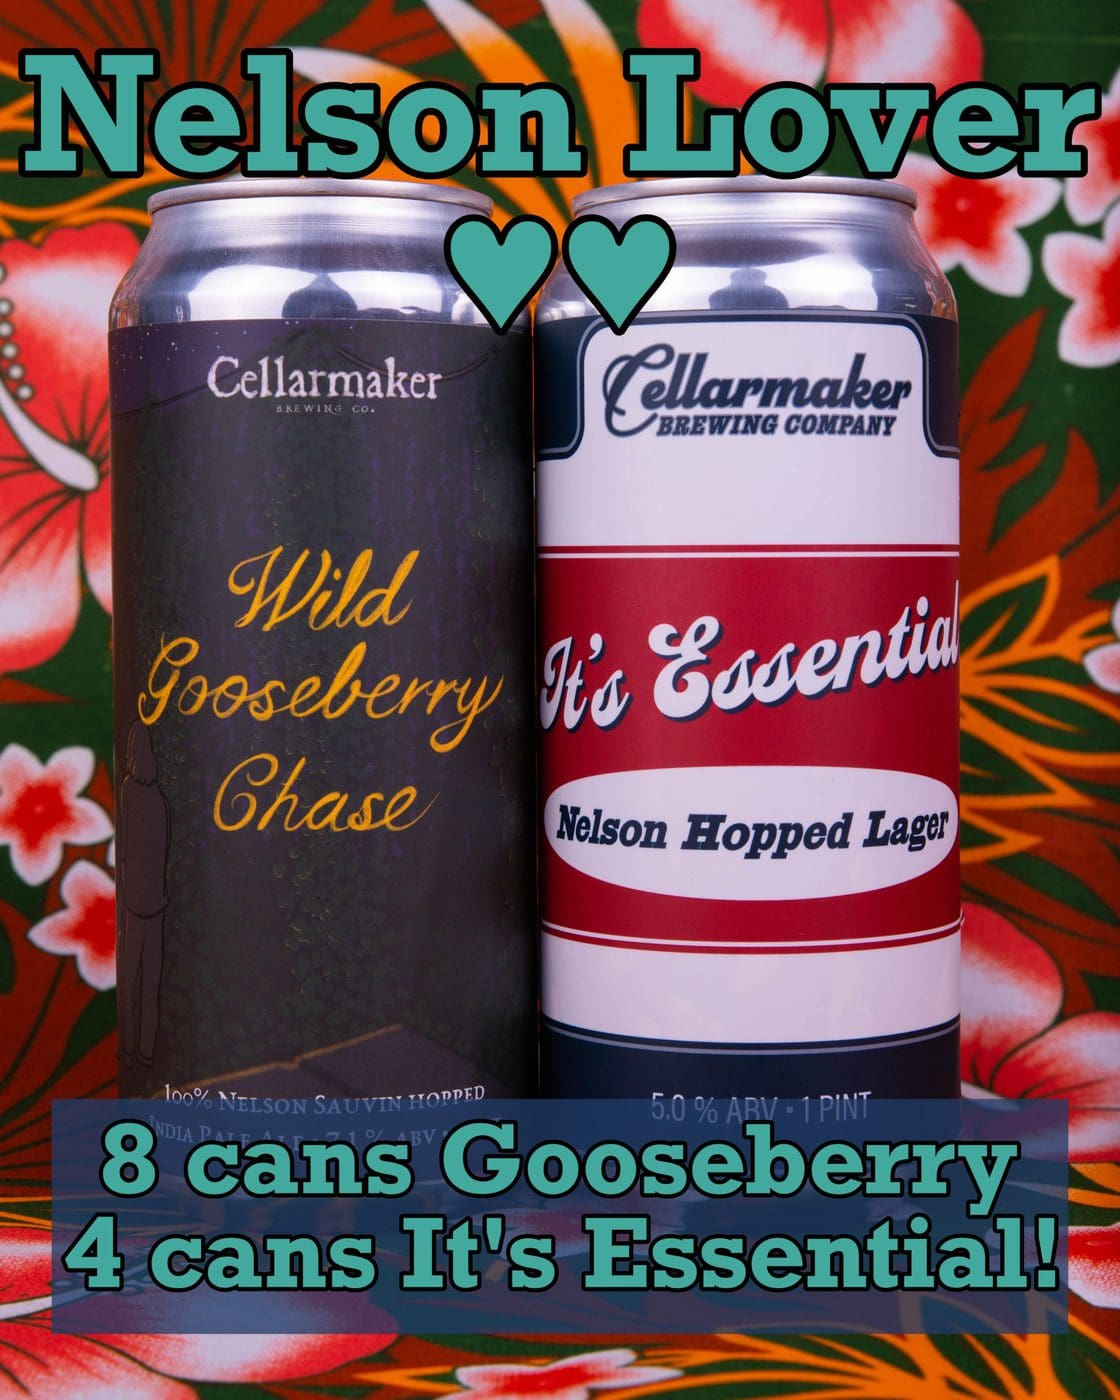 NELSON LOVER ~ 8 CANS Wild Gooseberry Chase IPA & 4 CANS It's Essential! … SHIPPING Out On TUESDAY 8/11 For NEXT DAY Delivery*